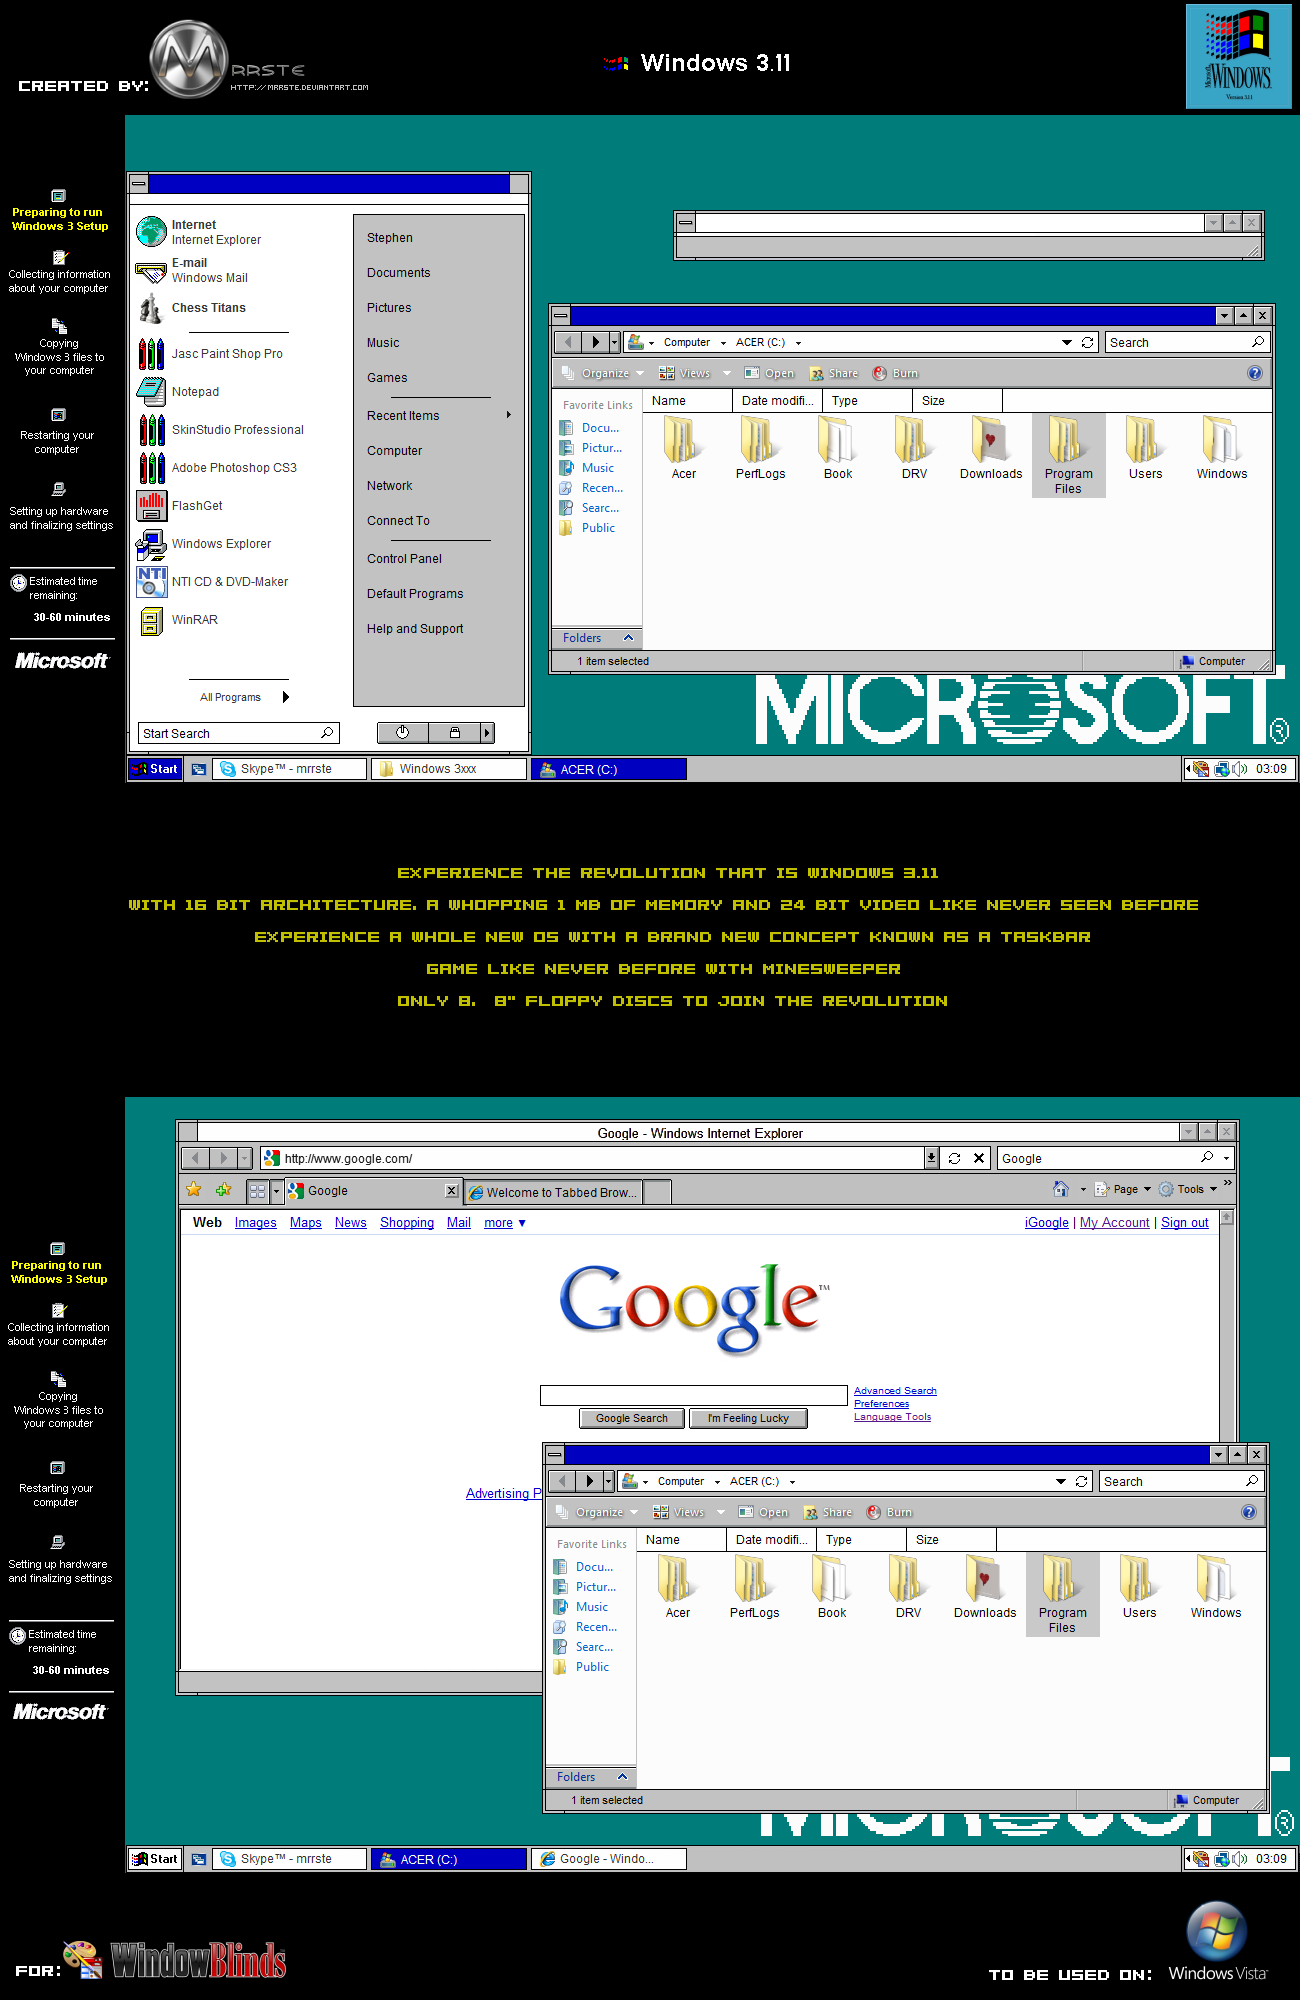 Windows 3.11 Vista by mrrste